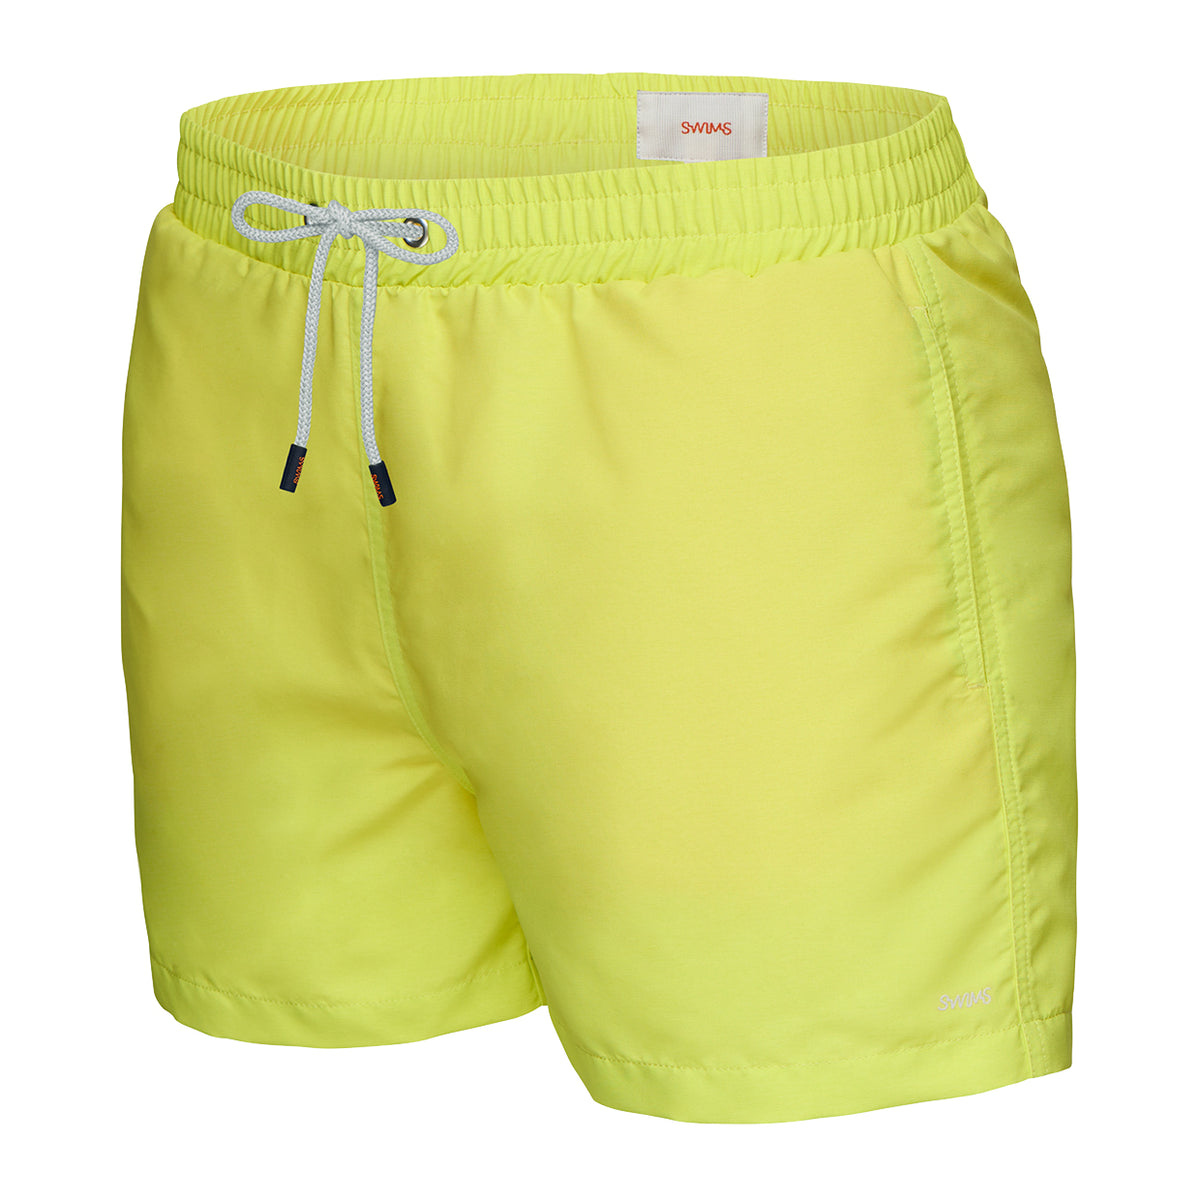 Breeze Swimshort - background::white,variant::Limeade